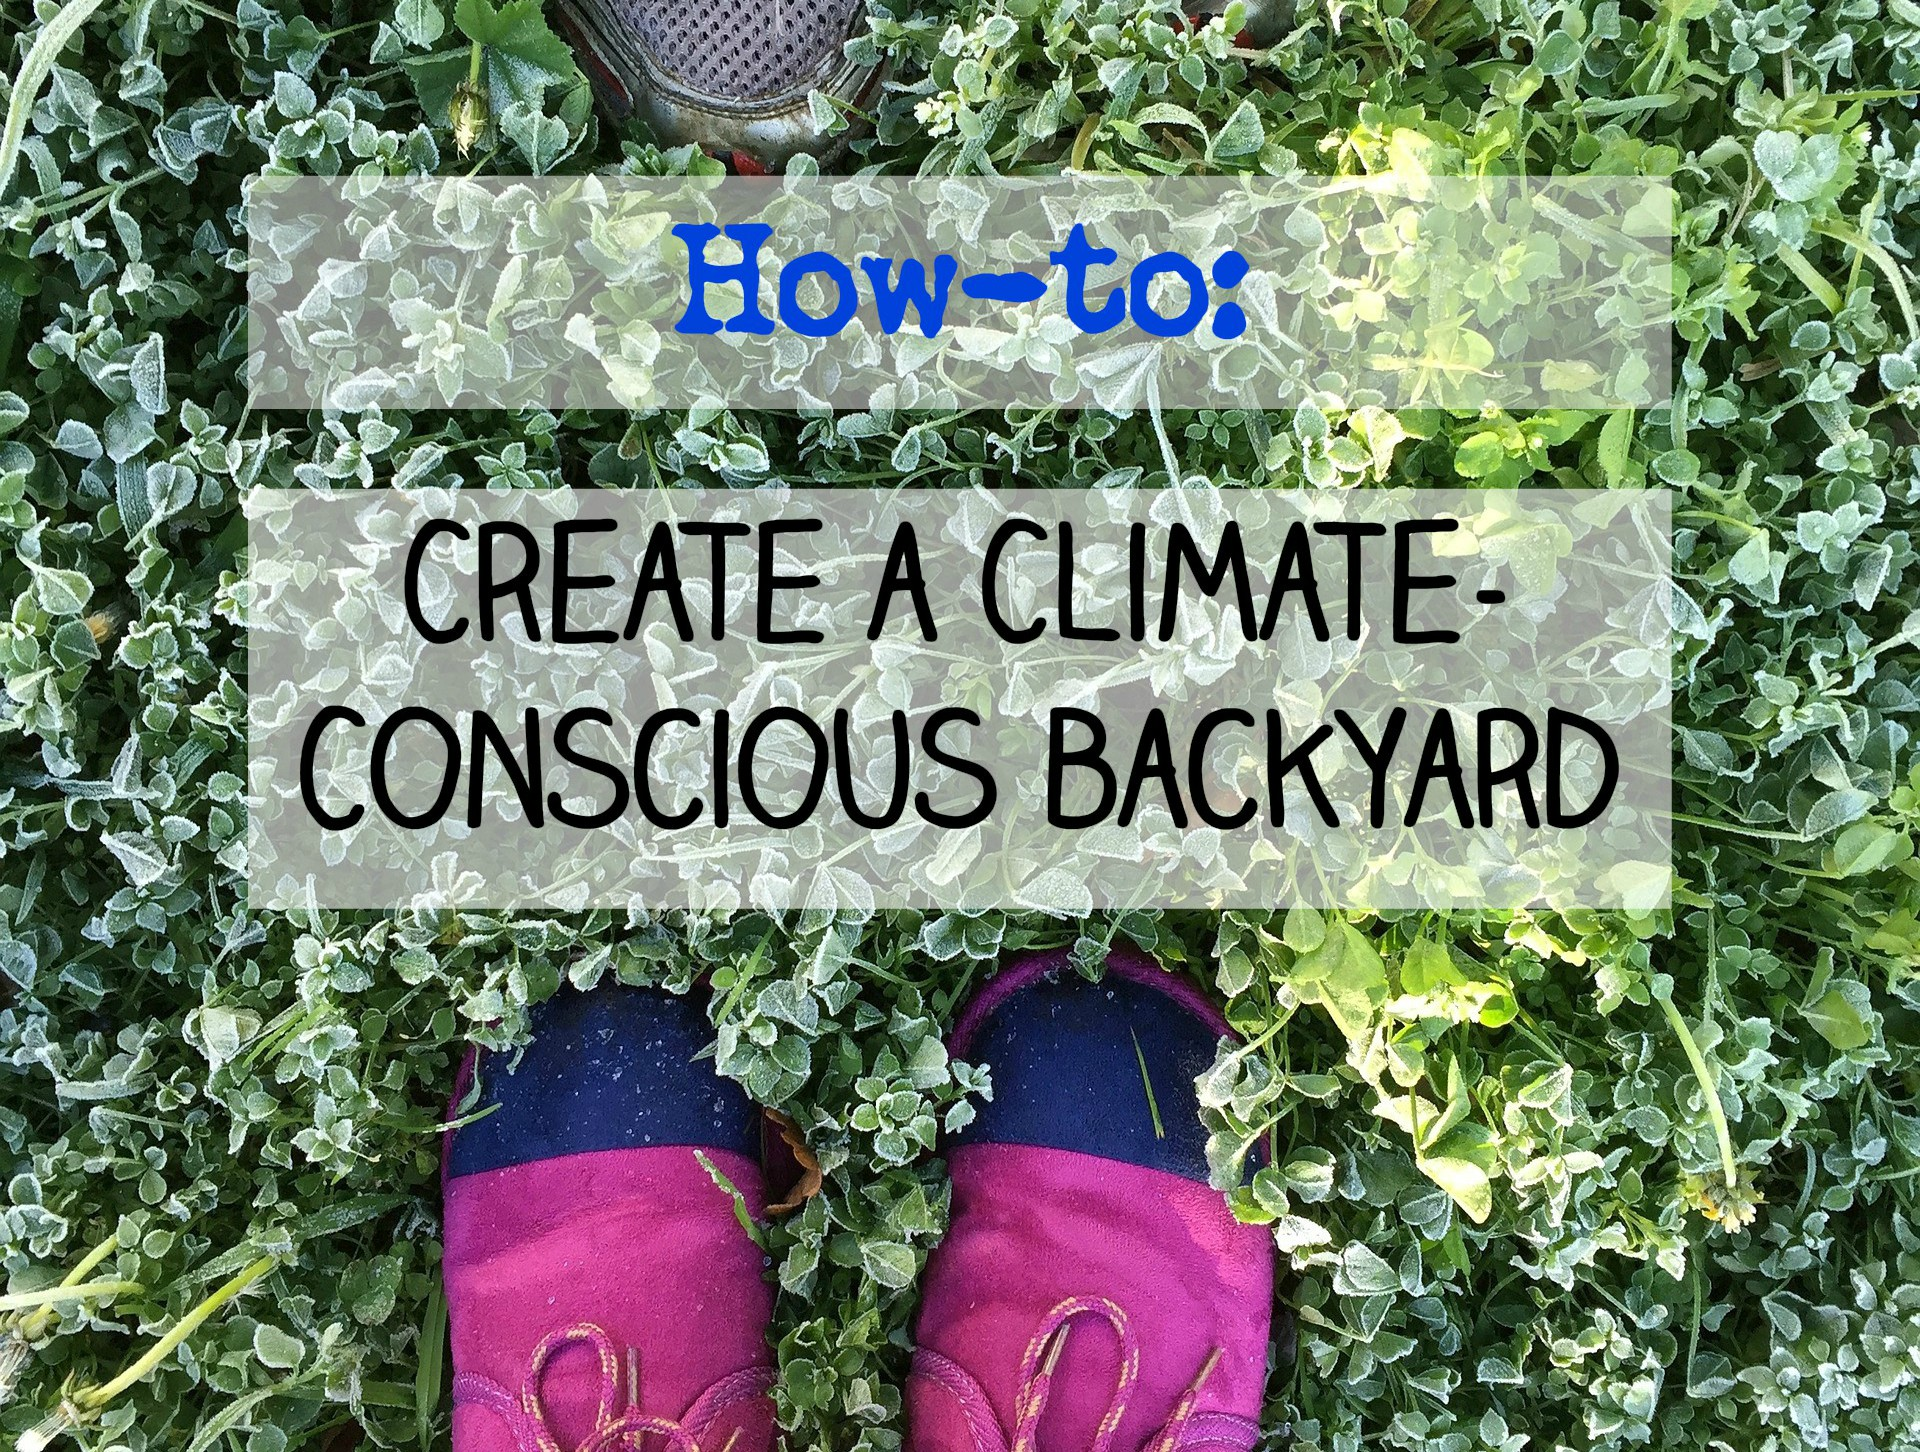 How to: Create a Climate-Conscious Backyard